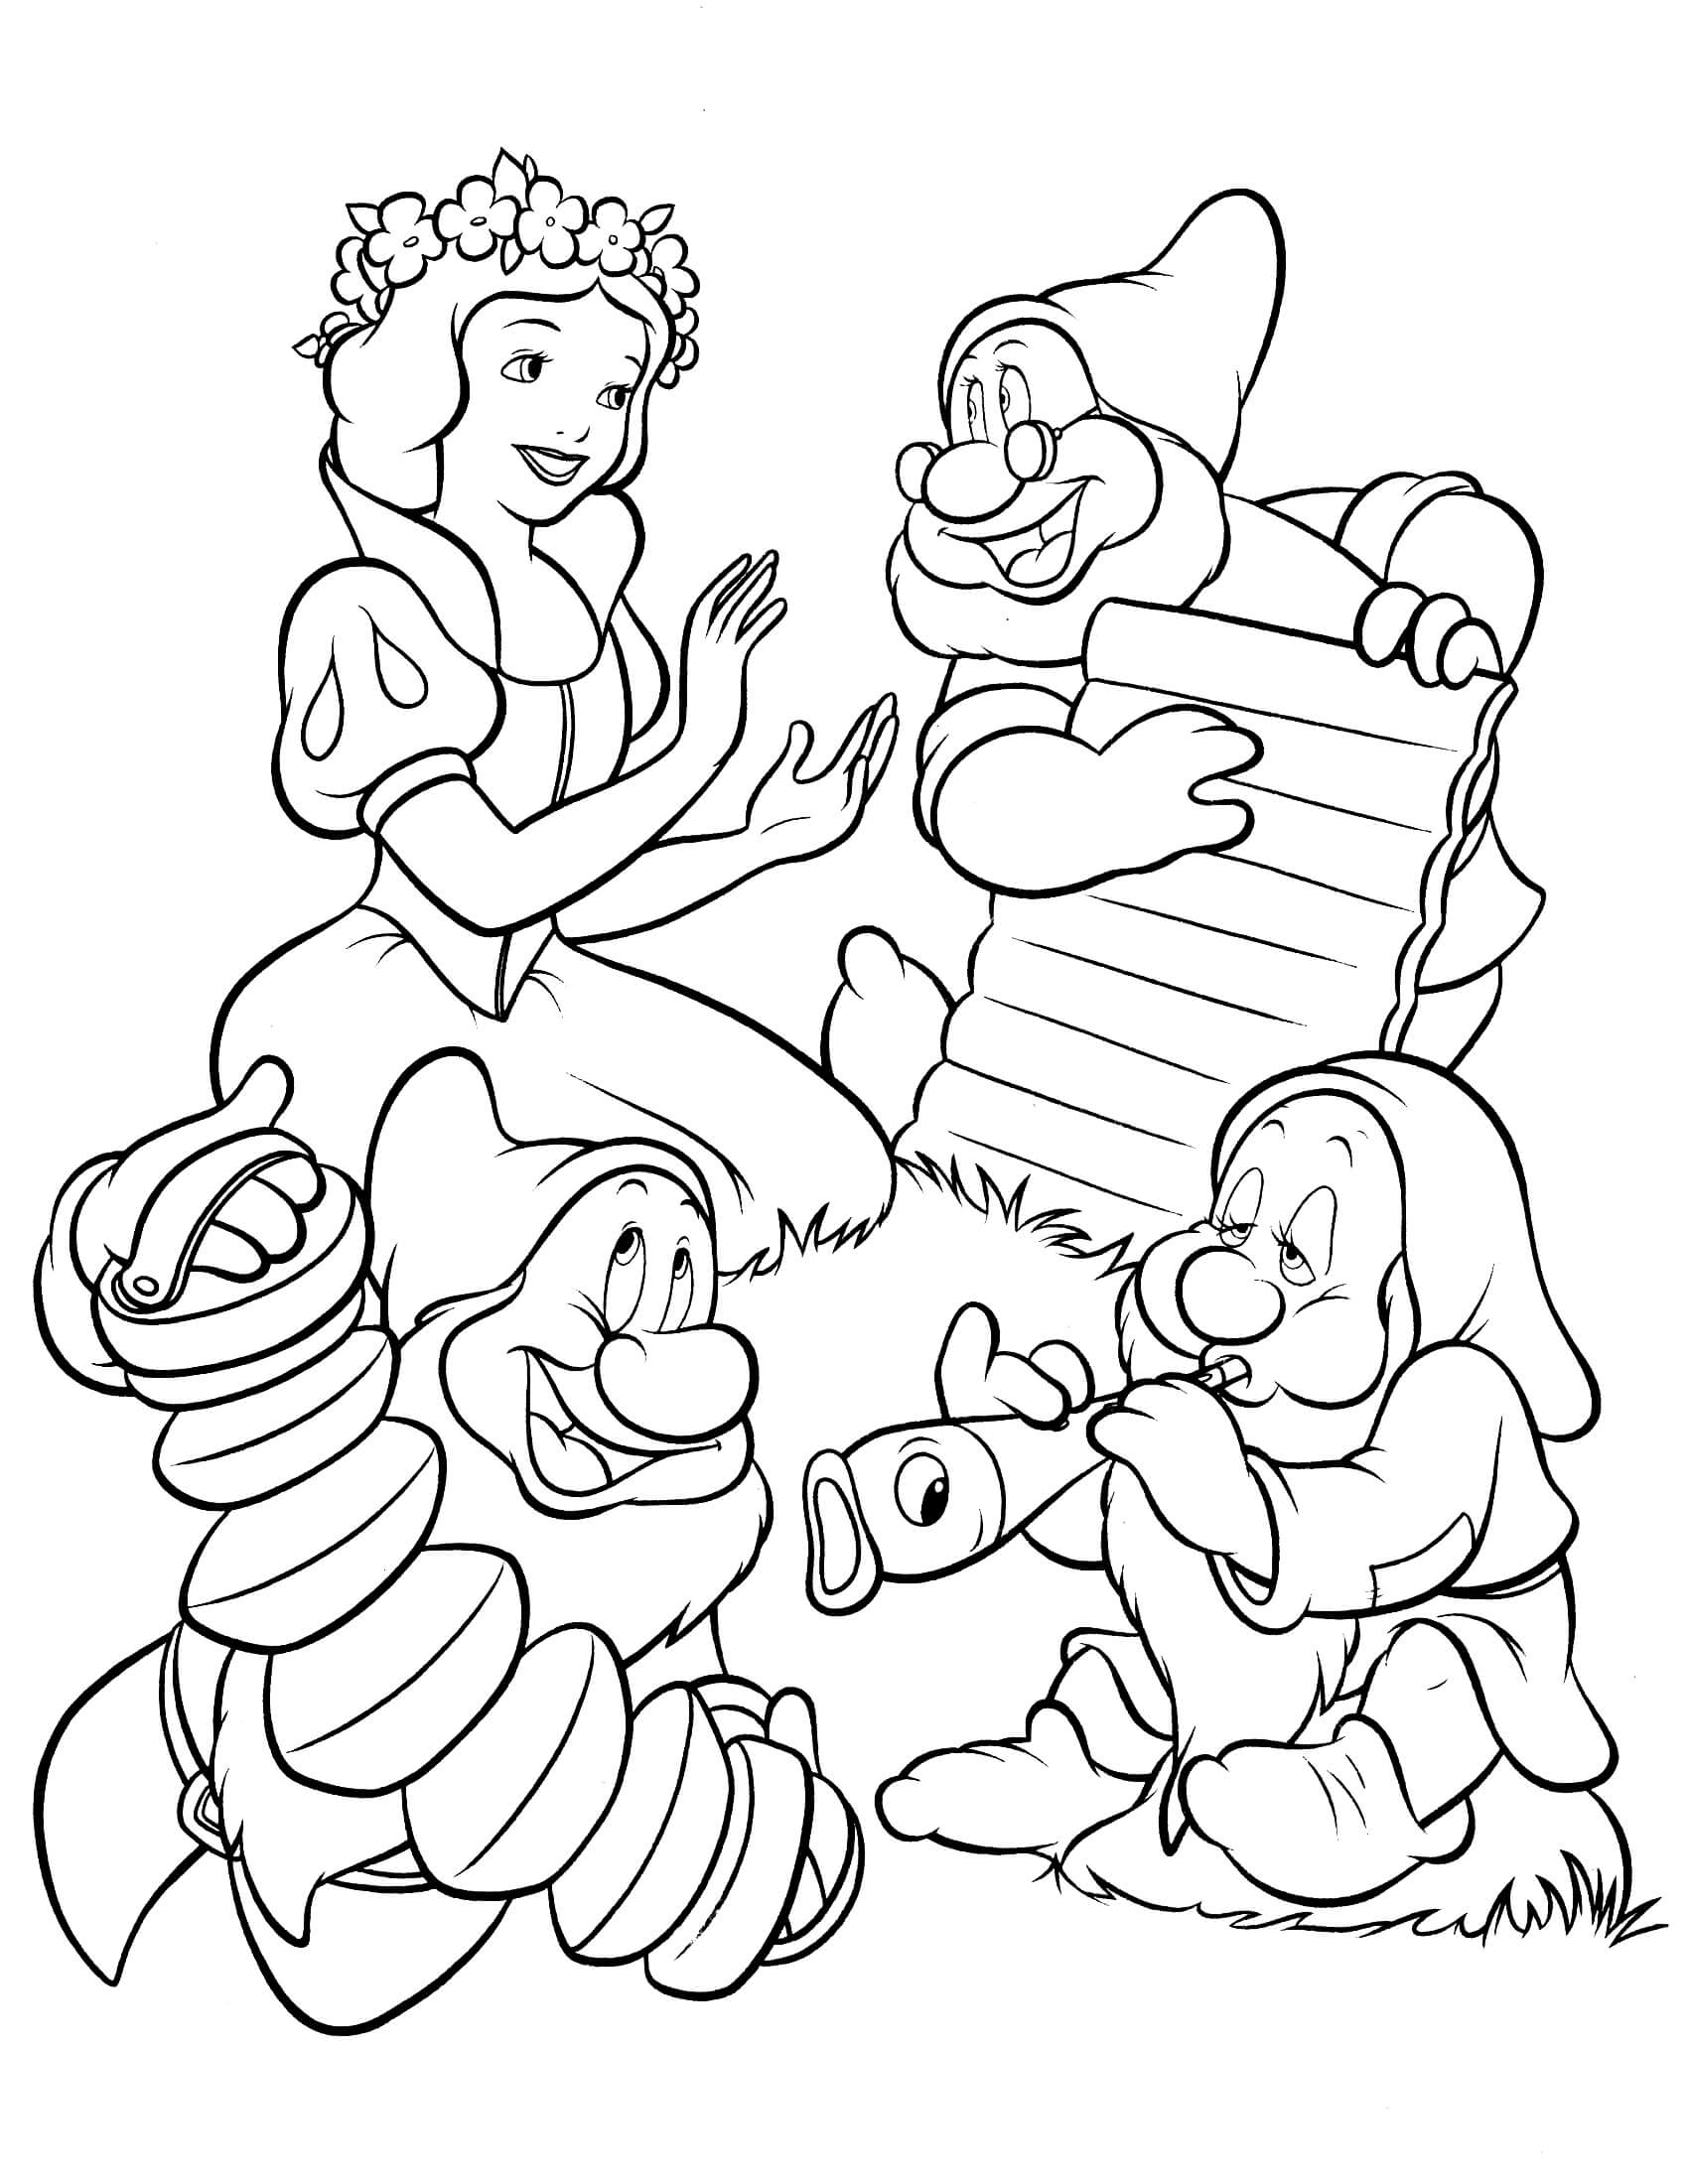 snowwhite coloring snow white coloring pages minister coloring coloring snowwhite